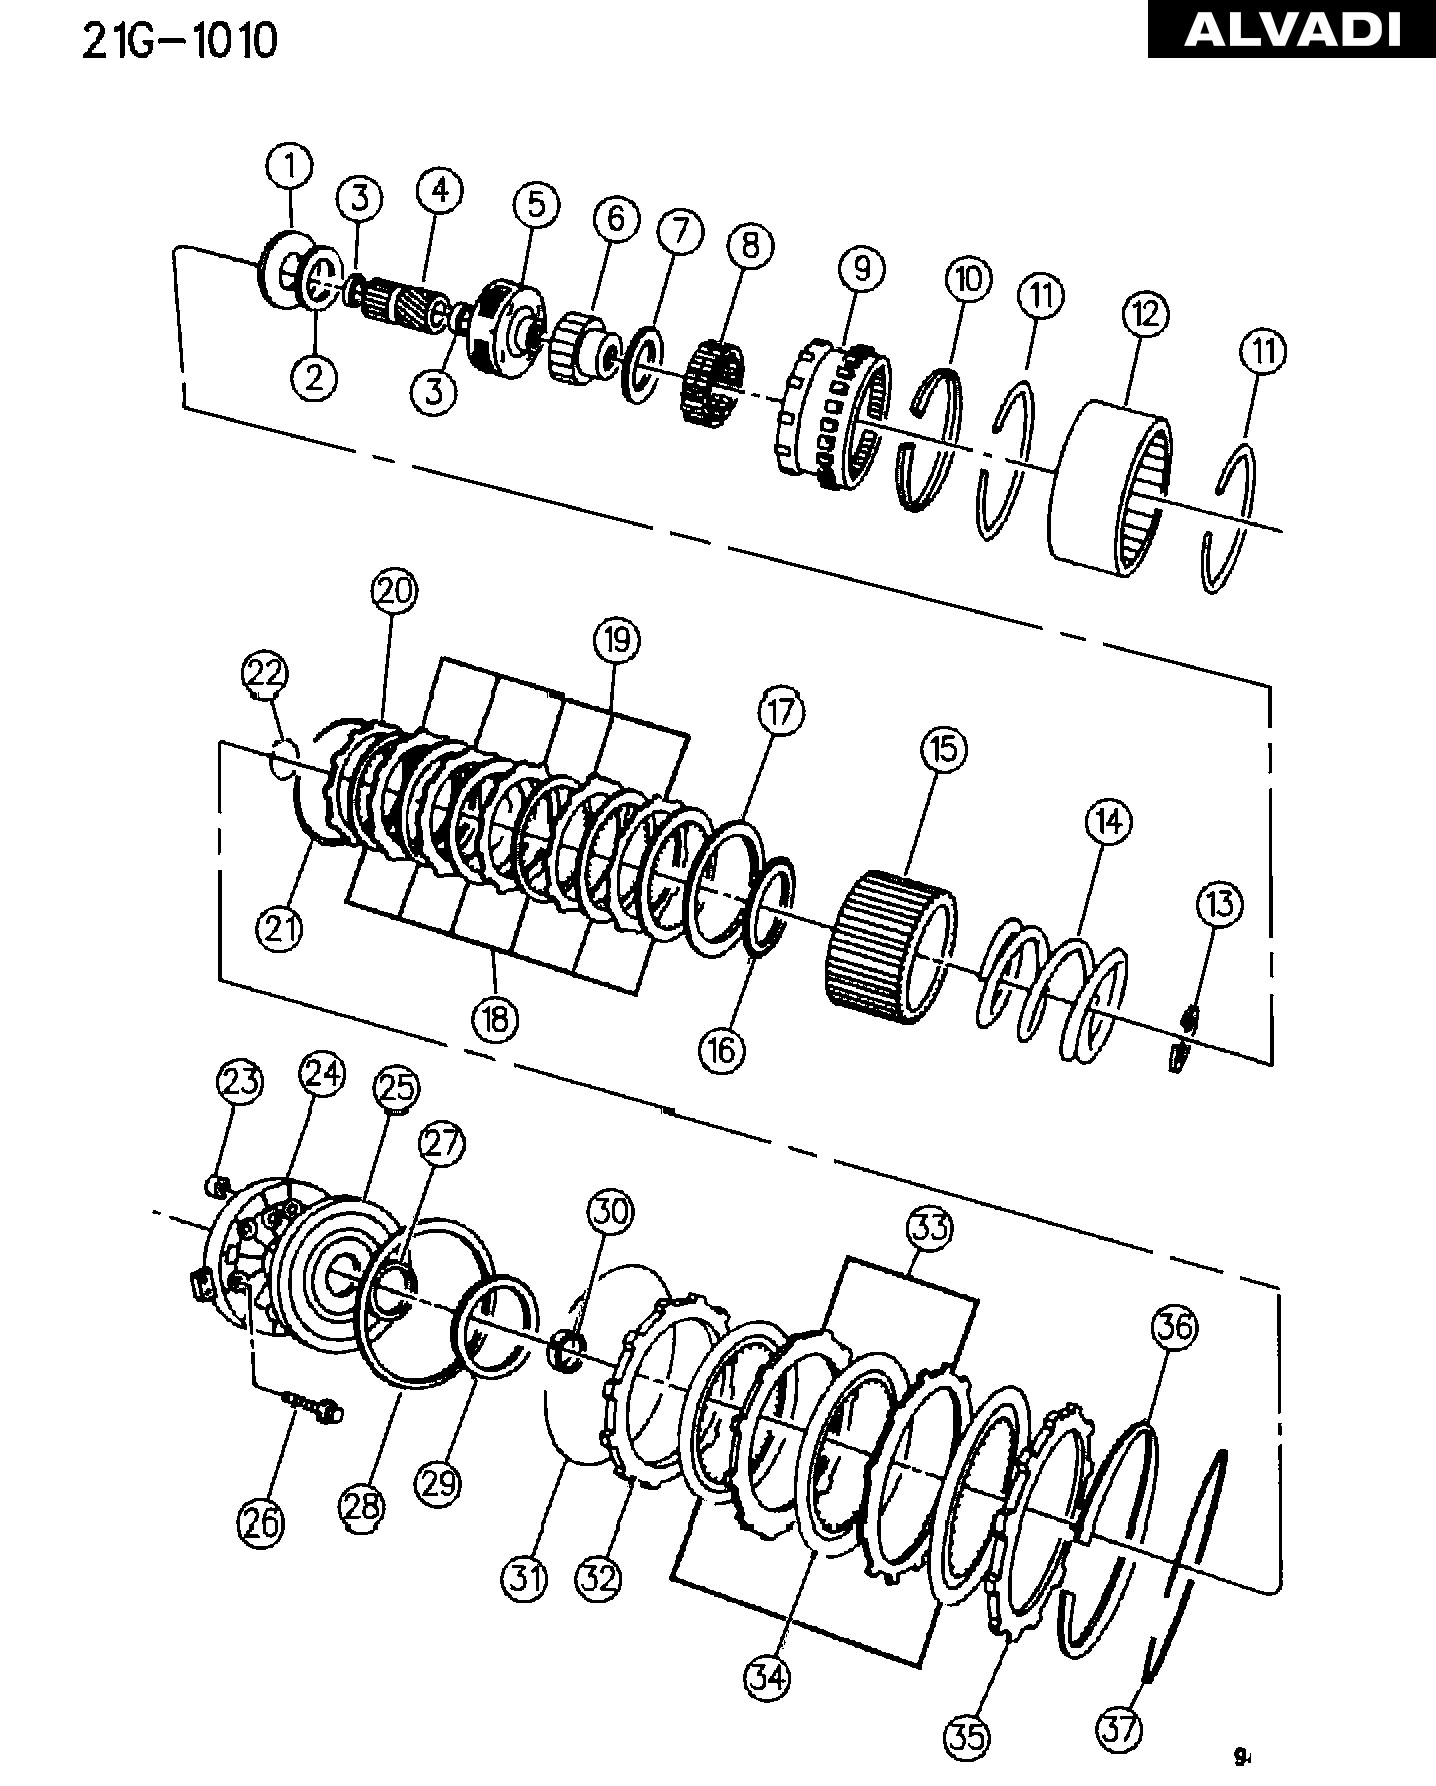 Clutch Diagram for A Manual Transmission Ram Clutch Overdrive with Gear Train Automatic Transmission 4 Of Clutch Diagram for A Manual Transmission